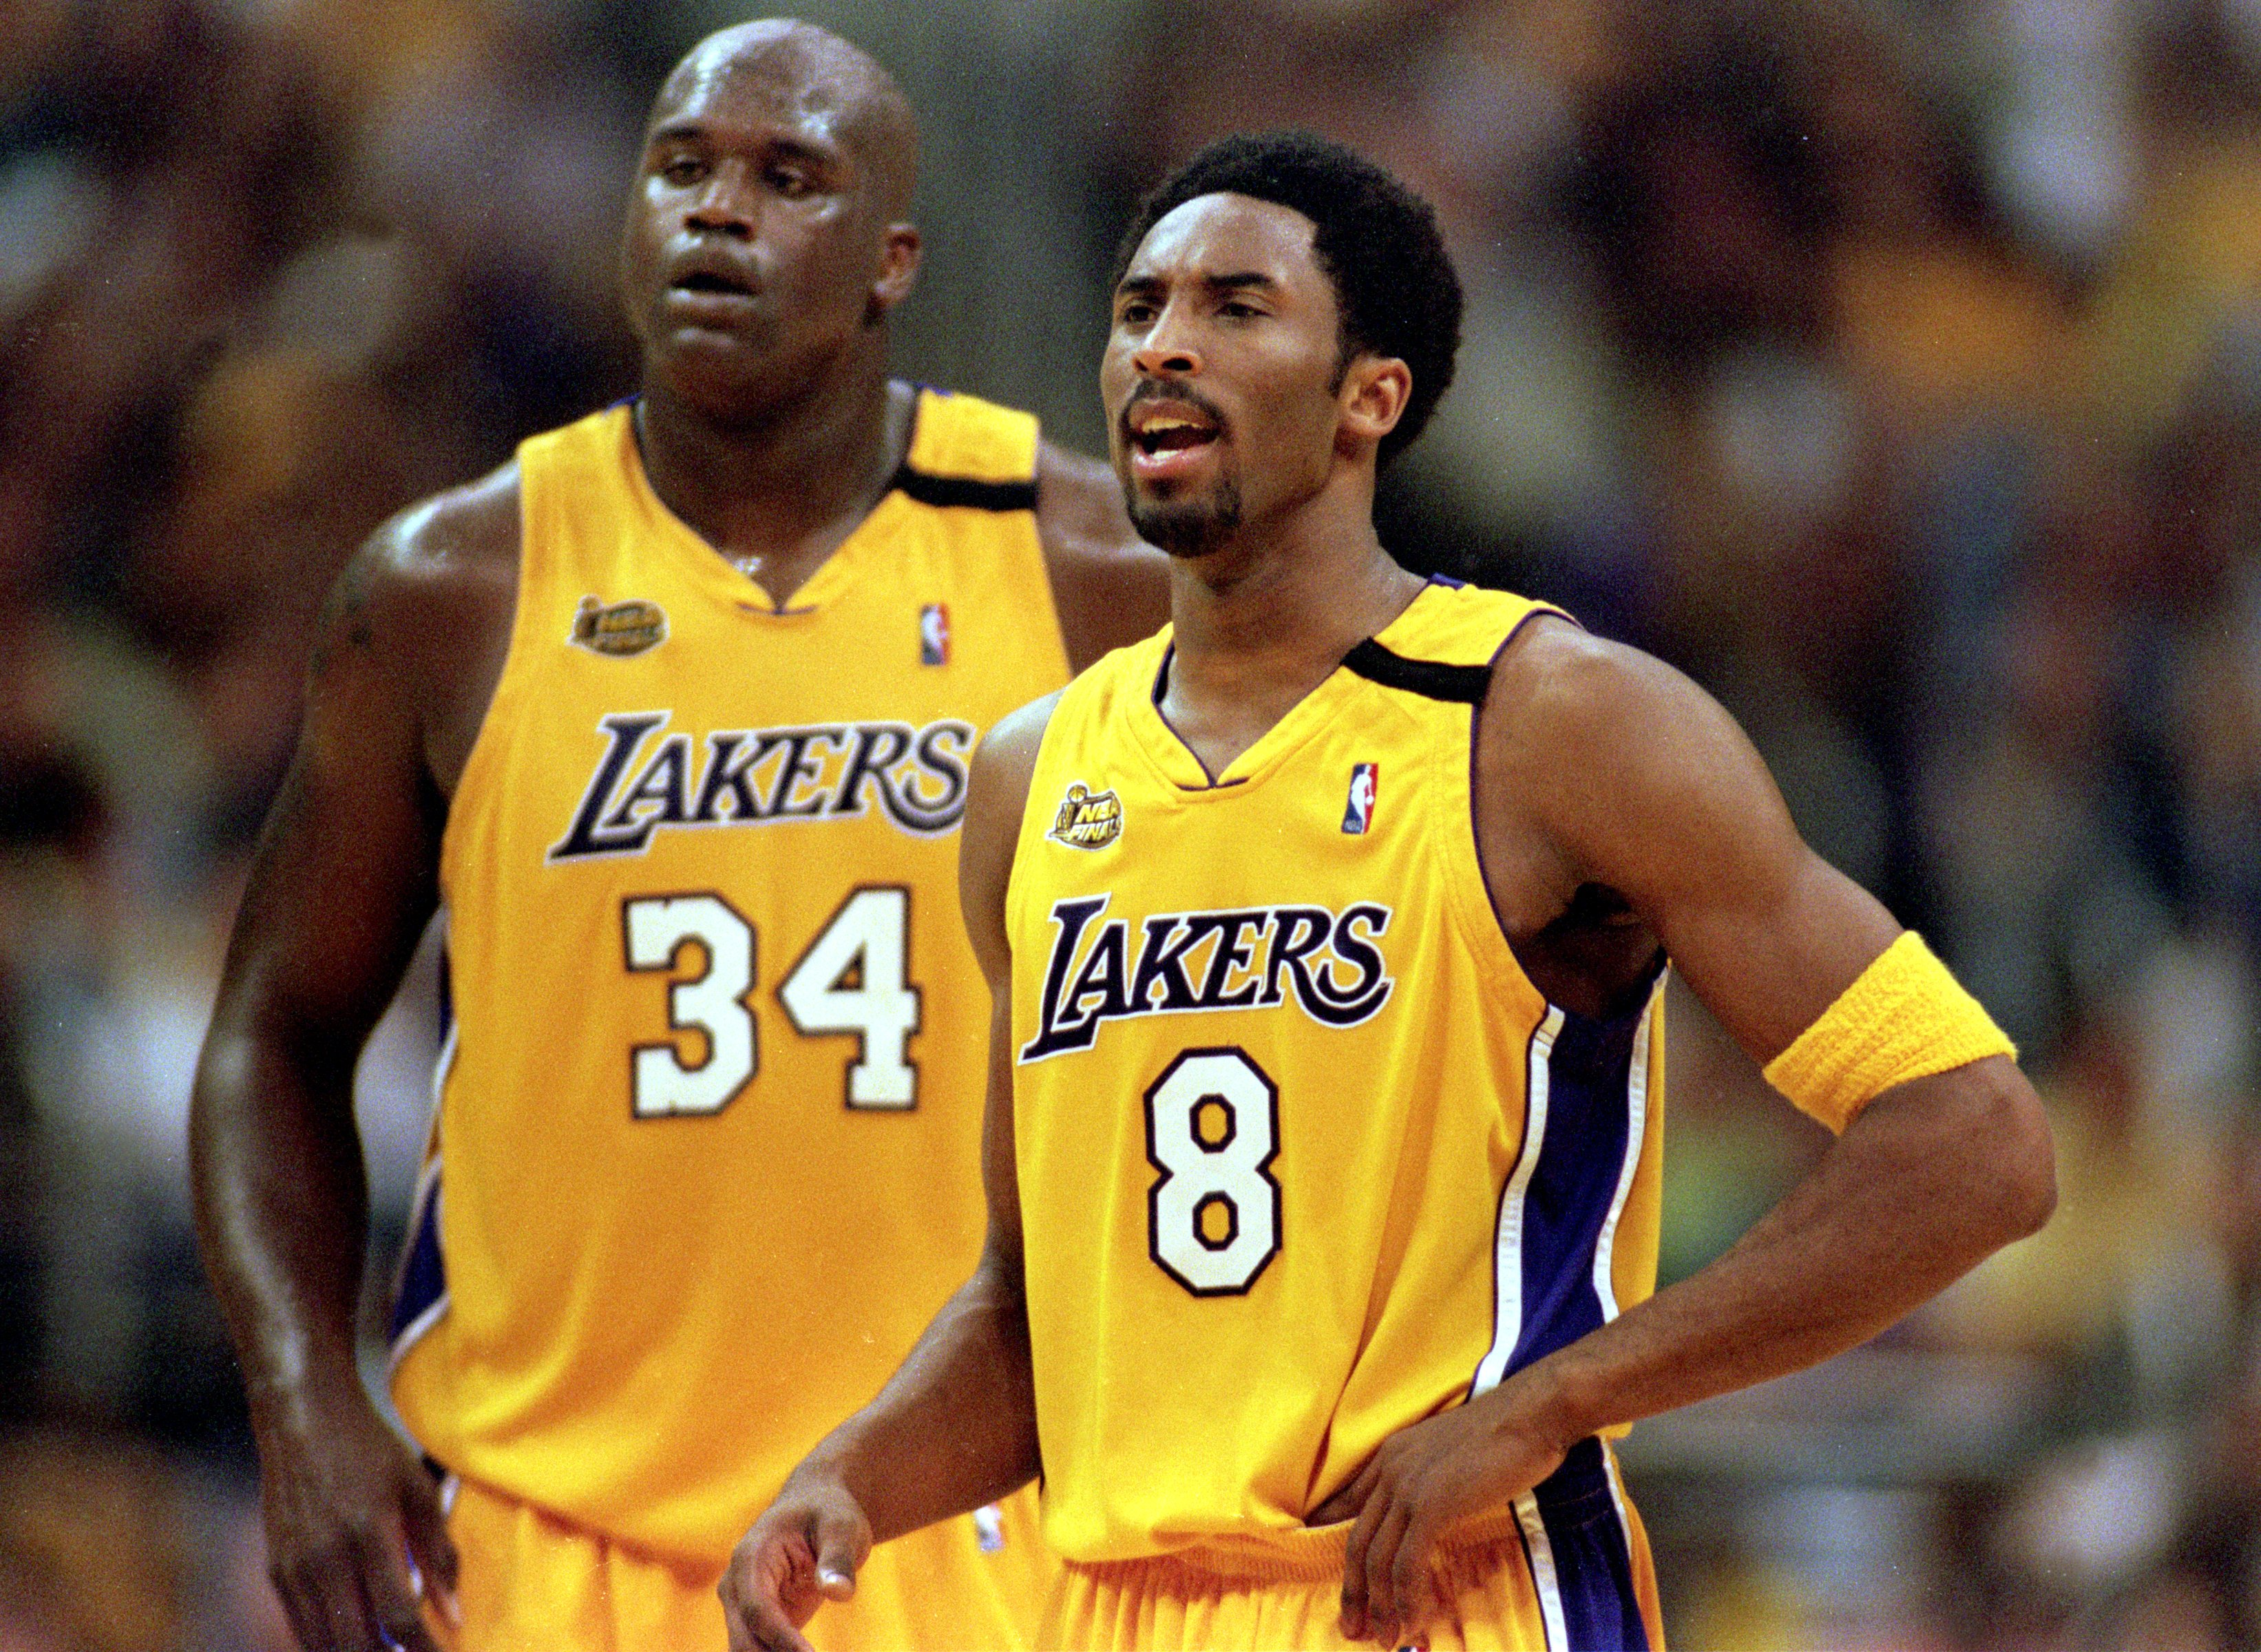 19 Jun 2000:  Kobe Bryant #8 and Shaquille O''Neal #34 of the Los Angeles Lakers looking on during the NBA Finals Game 6 against the Indiana Pacers at the Staples Center in Los Angeles, California.  The Lakers defeated the Pacers in 116-111.  NOTE TO USER